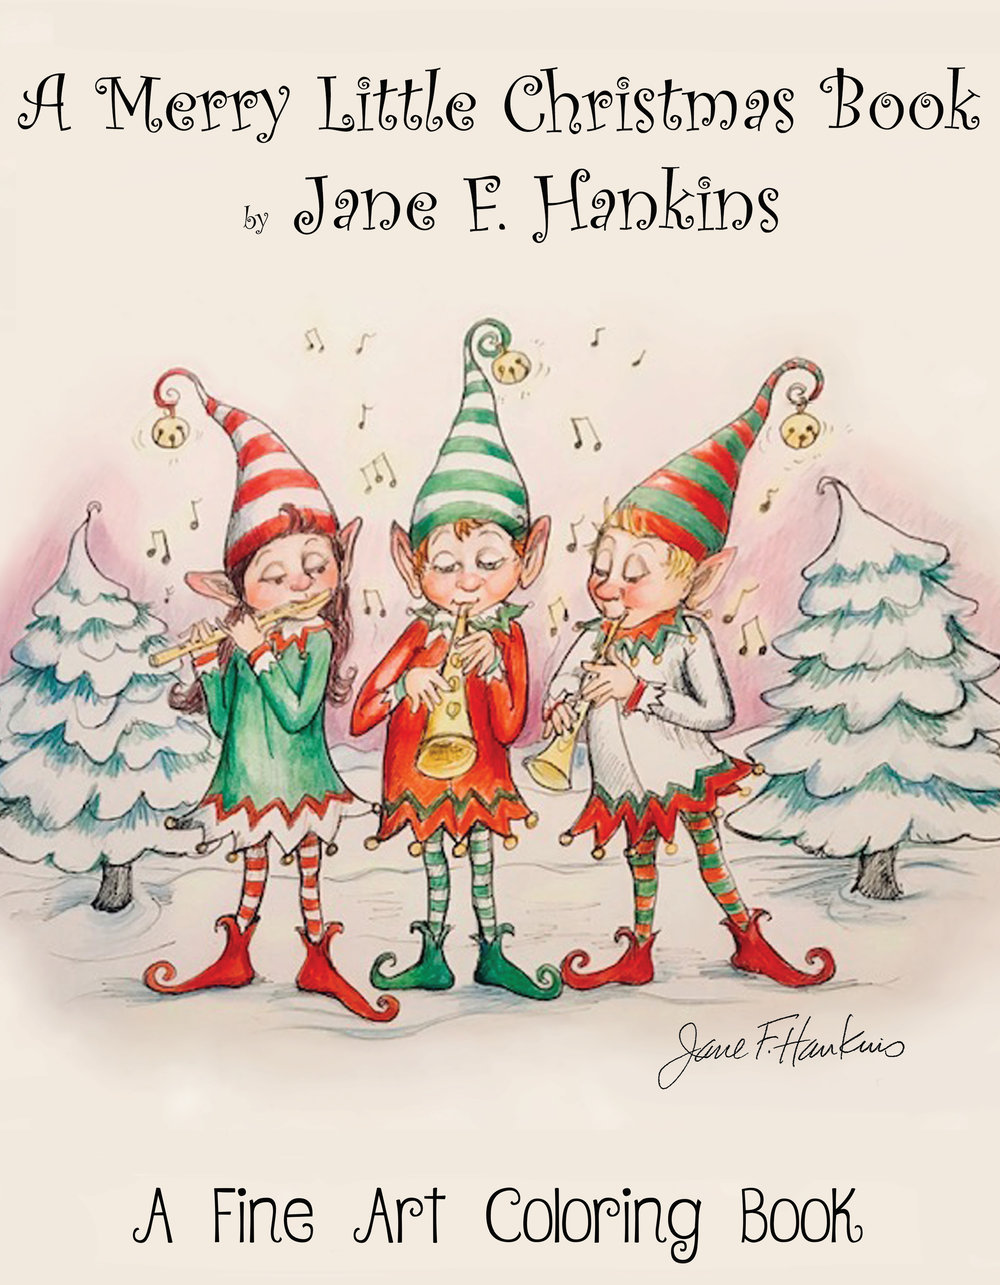 A Merry Little Christmas Book by Jane F Hankins